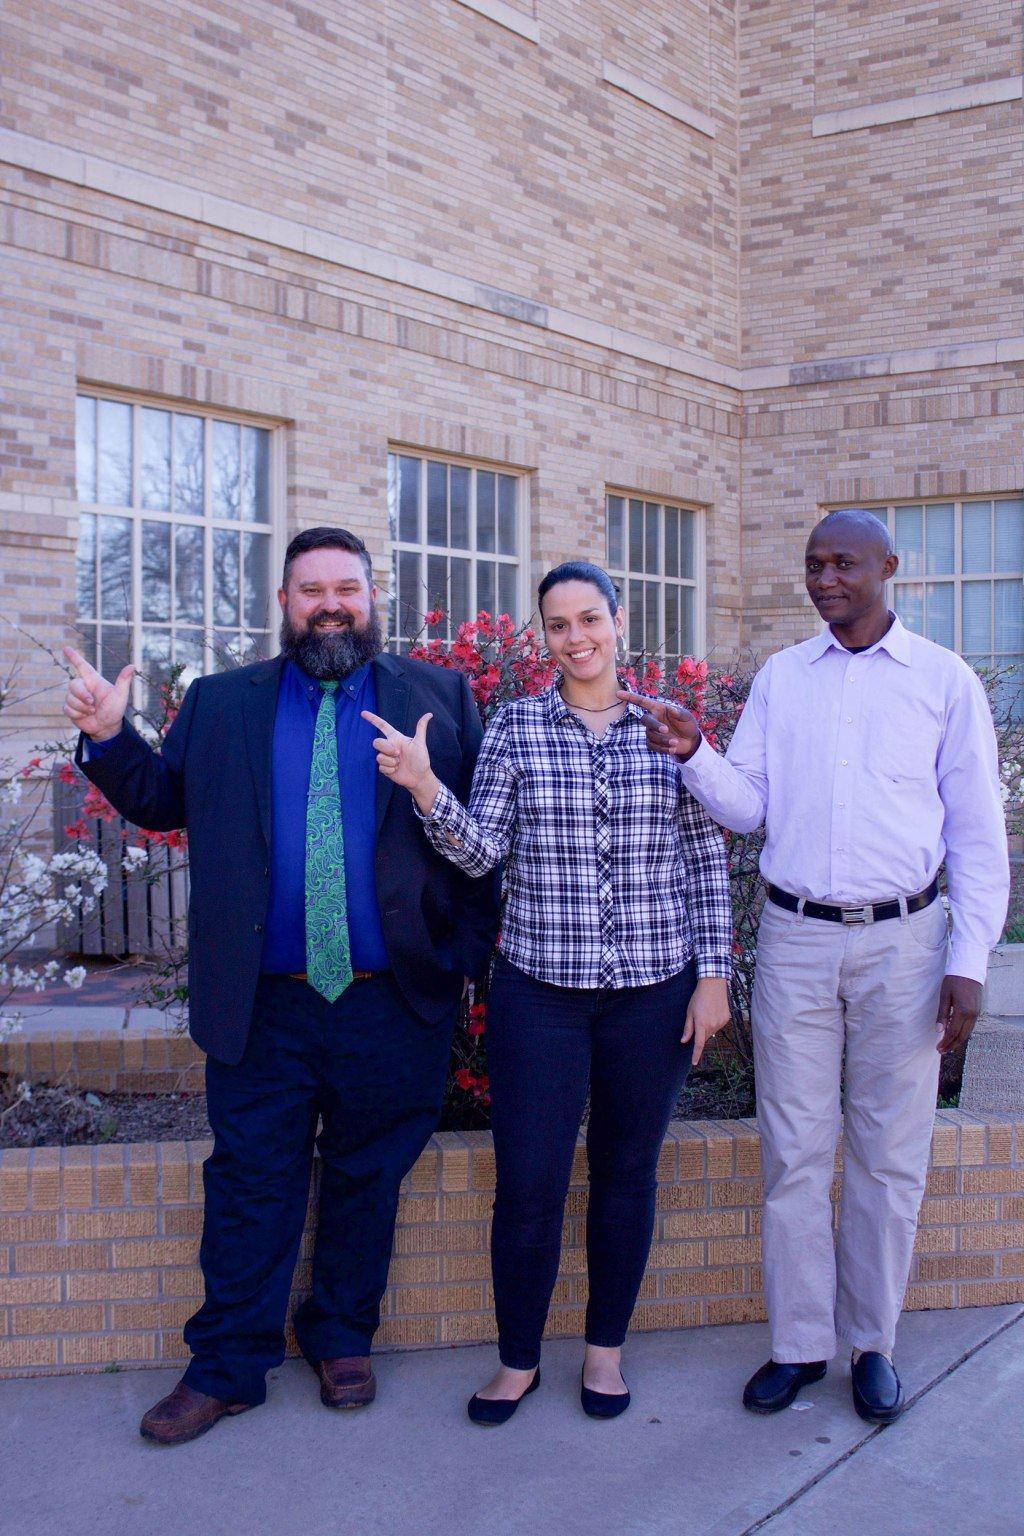 Keith Frost, Gipsy Bocanegra and Raphael Gikunda all received presidential graduate fellowships to study in the Department of Agricultural Education and Communications.